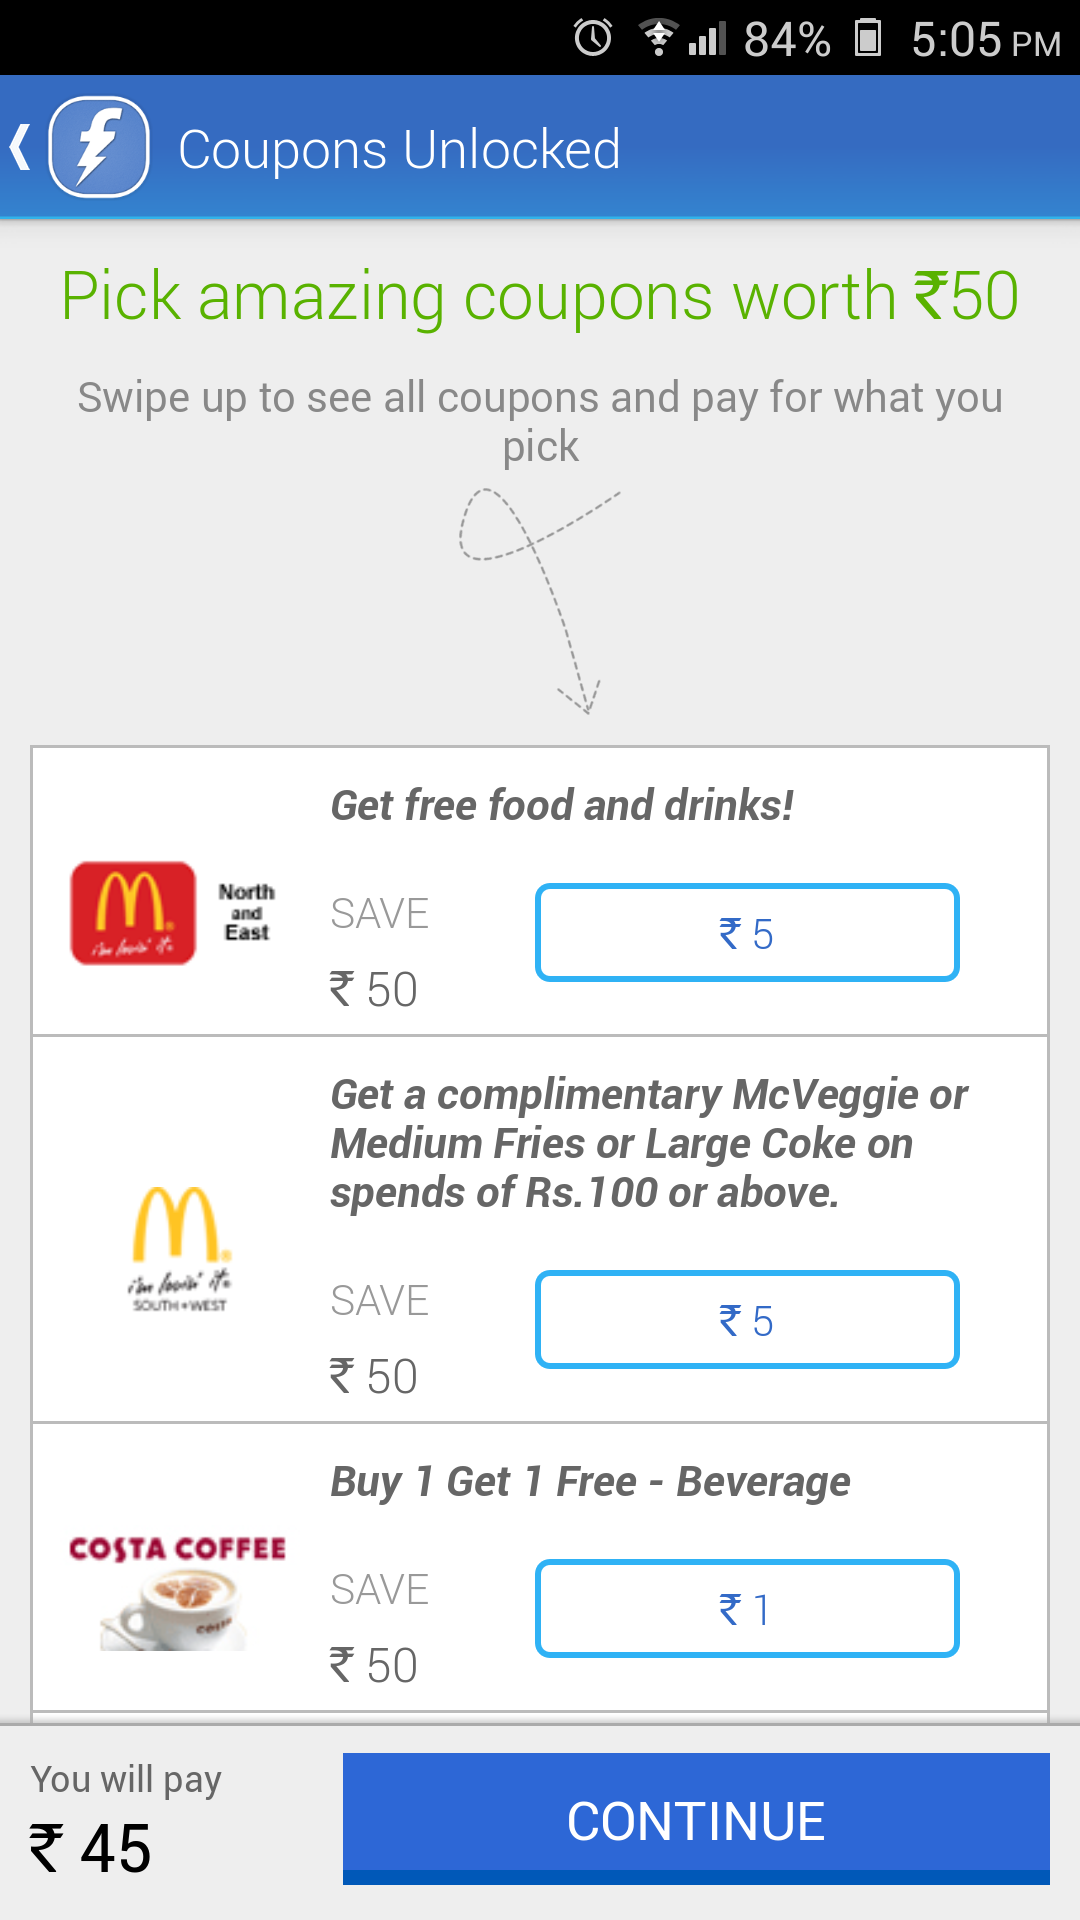 FreeCharge Android App – Recharge your Mobile, DTH and Pay